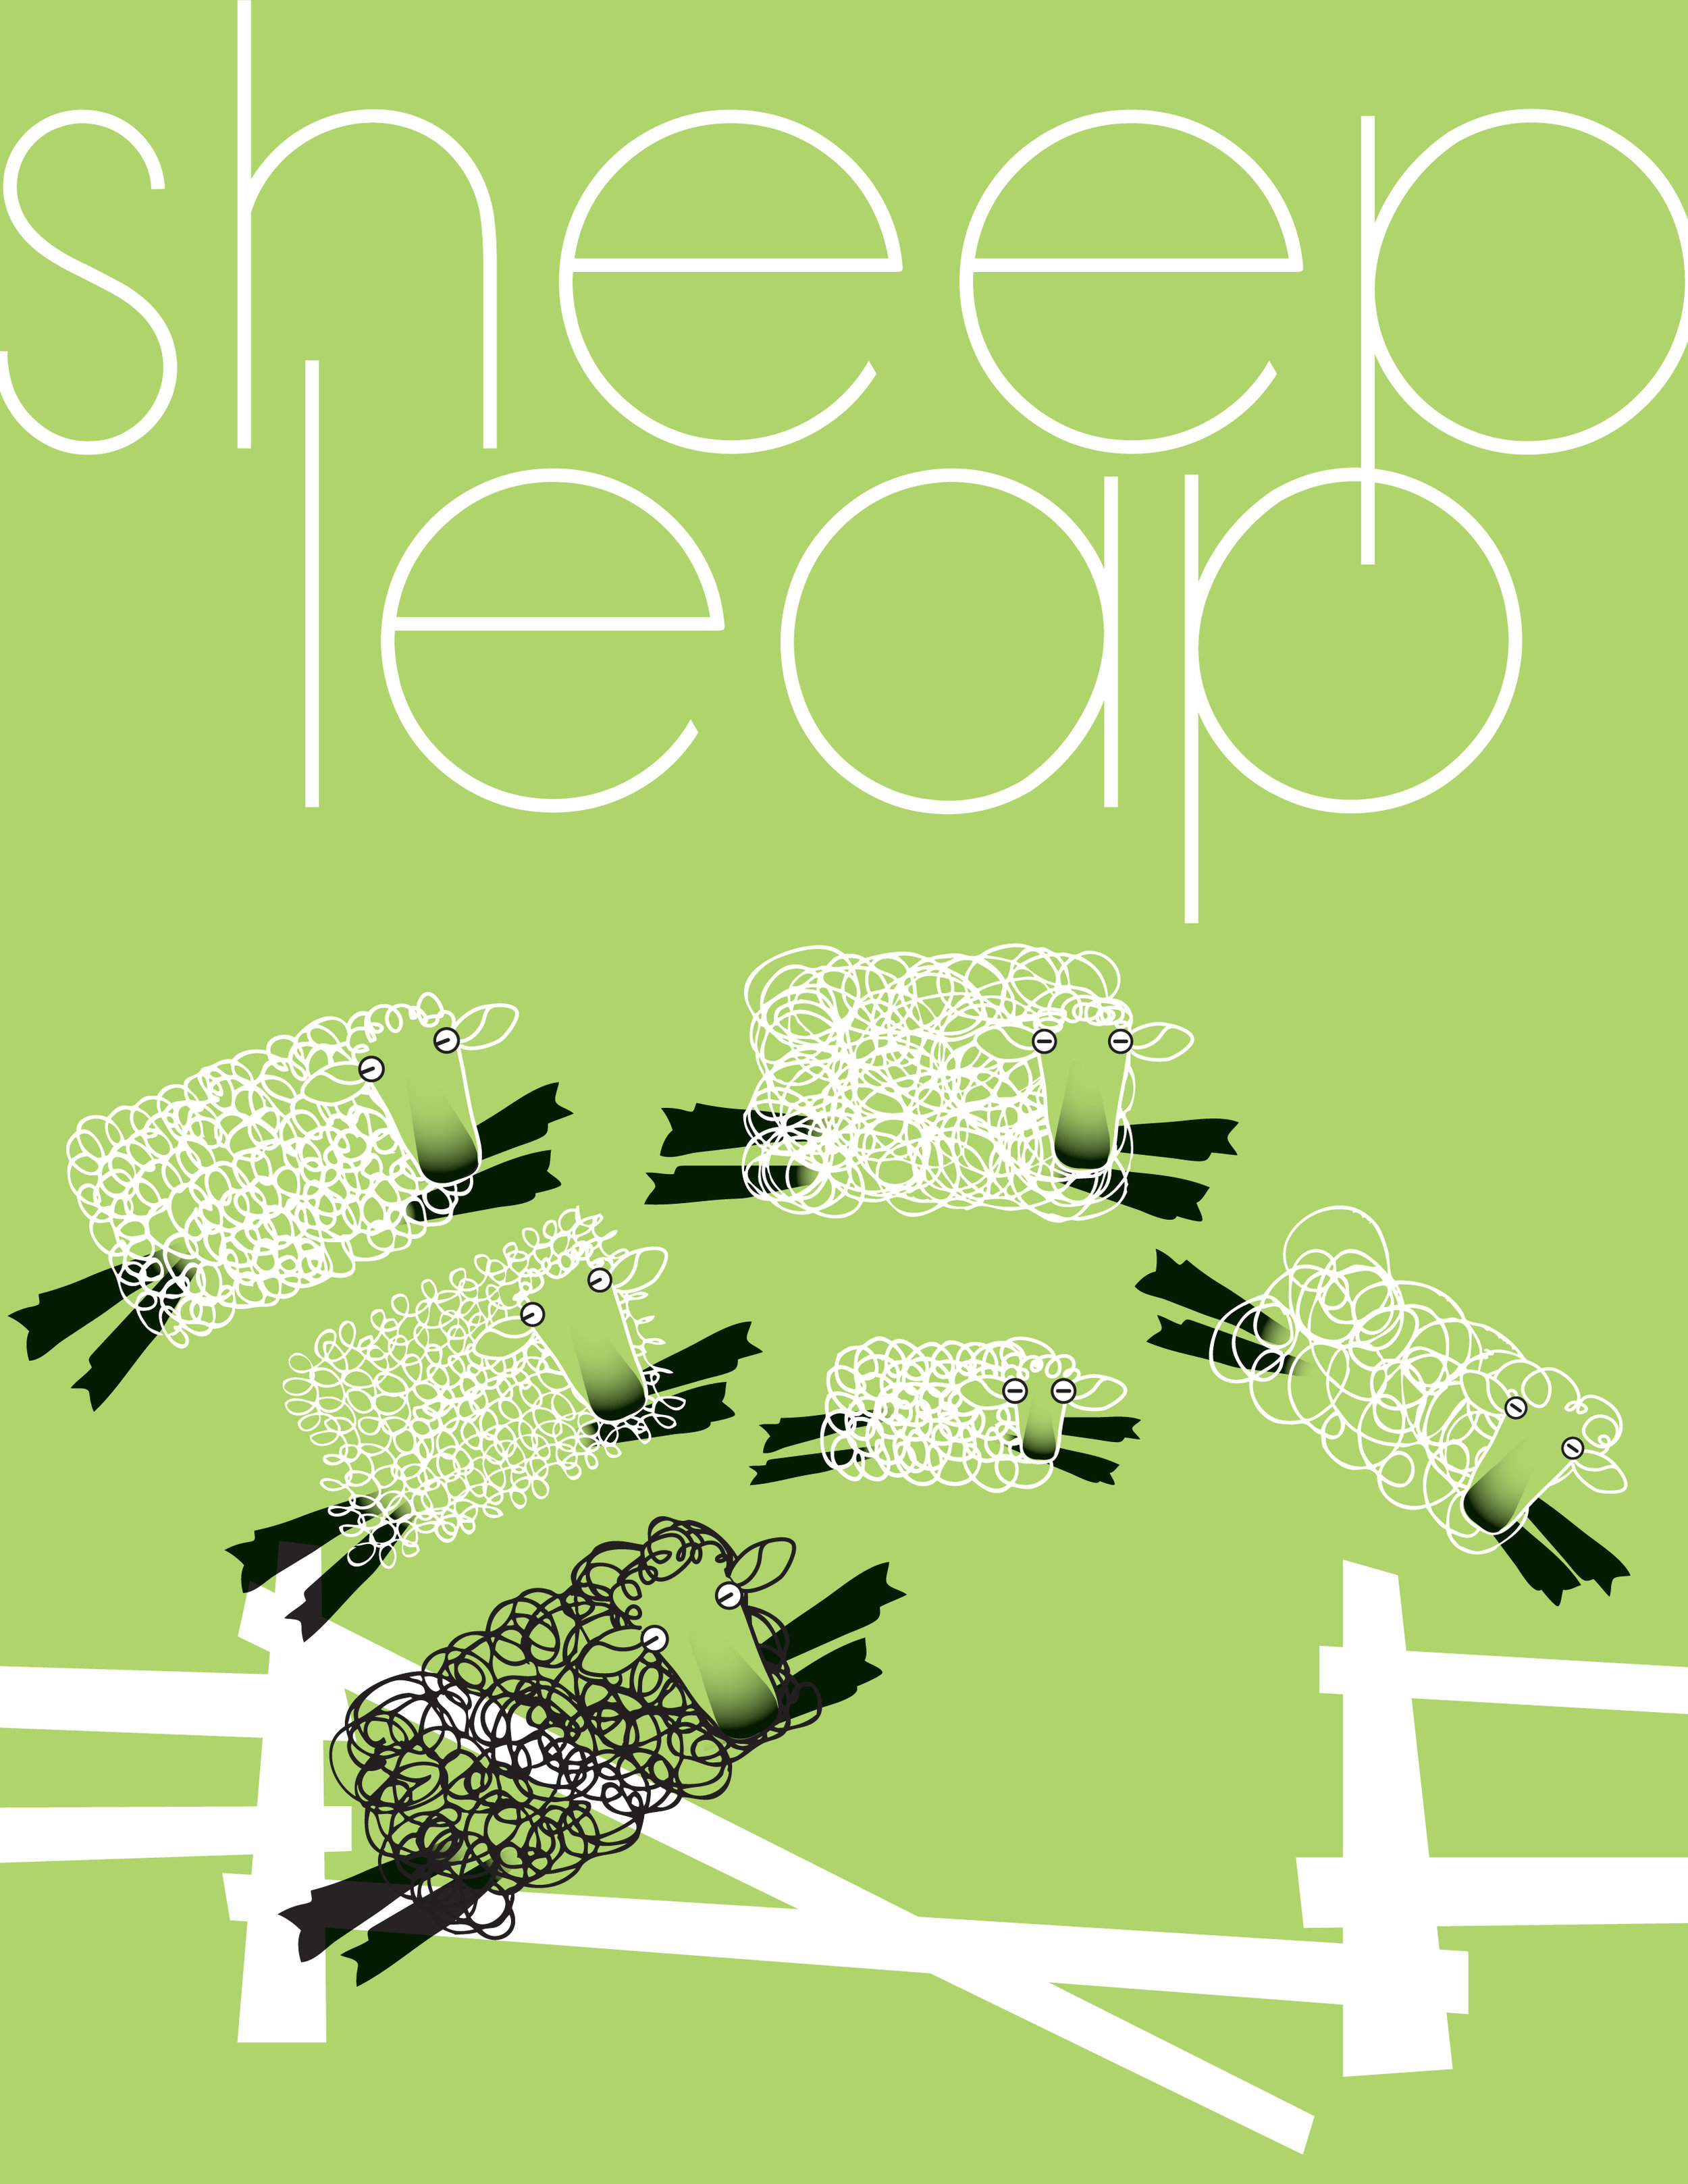 Sheep Sleep Book 2-5.jpg